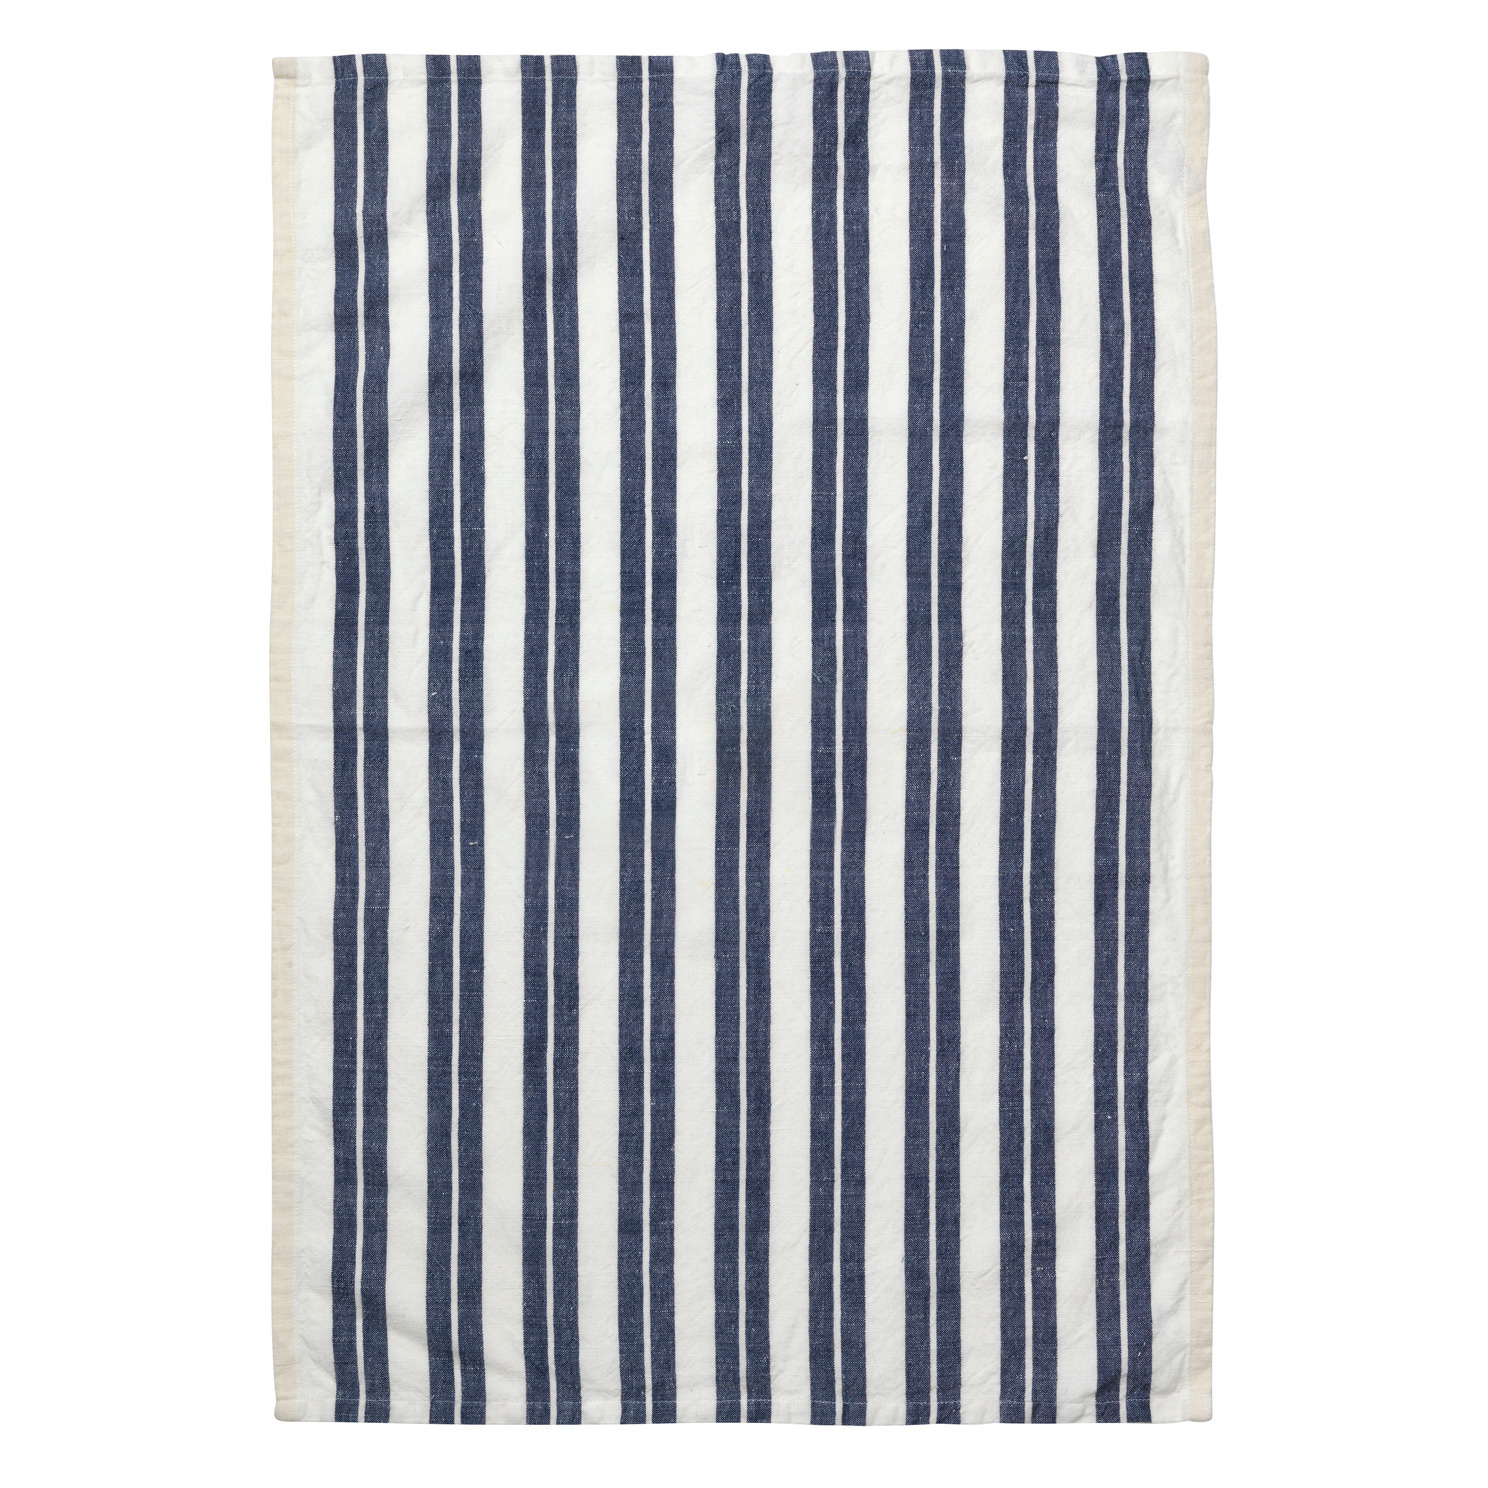 Hale yarn dyed linen tea towel off white